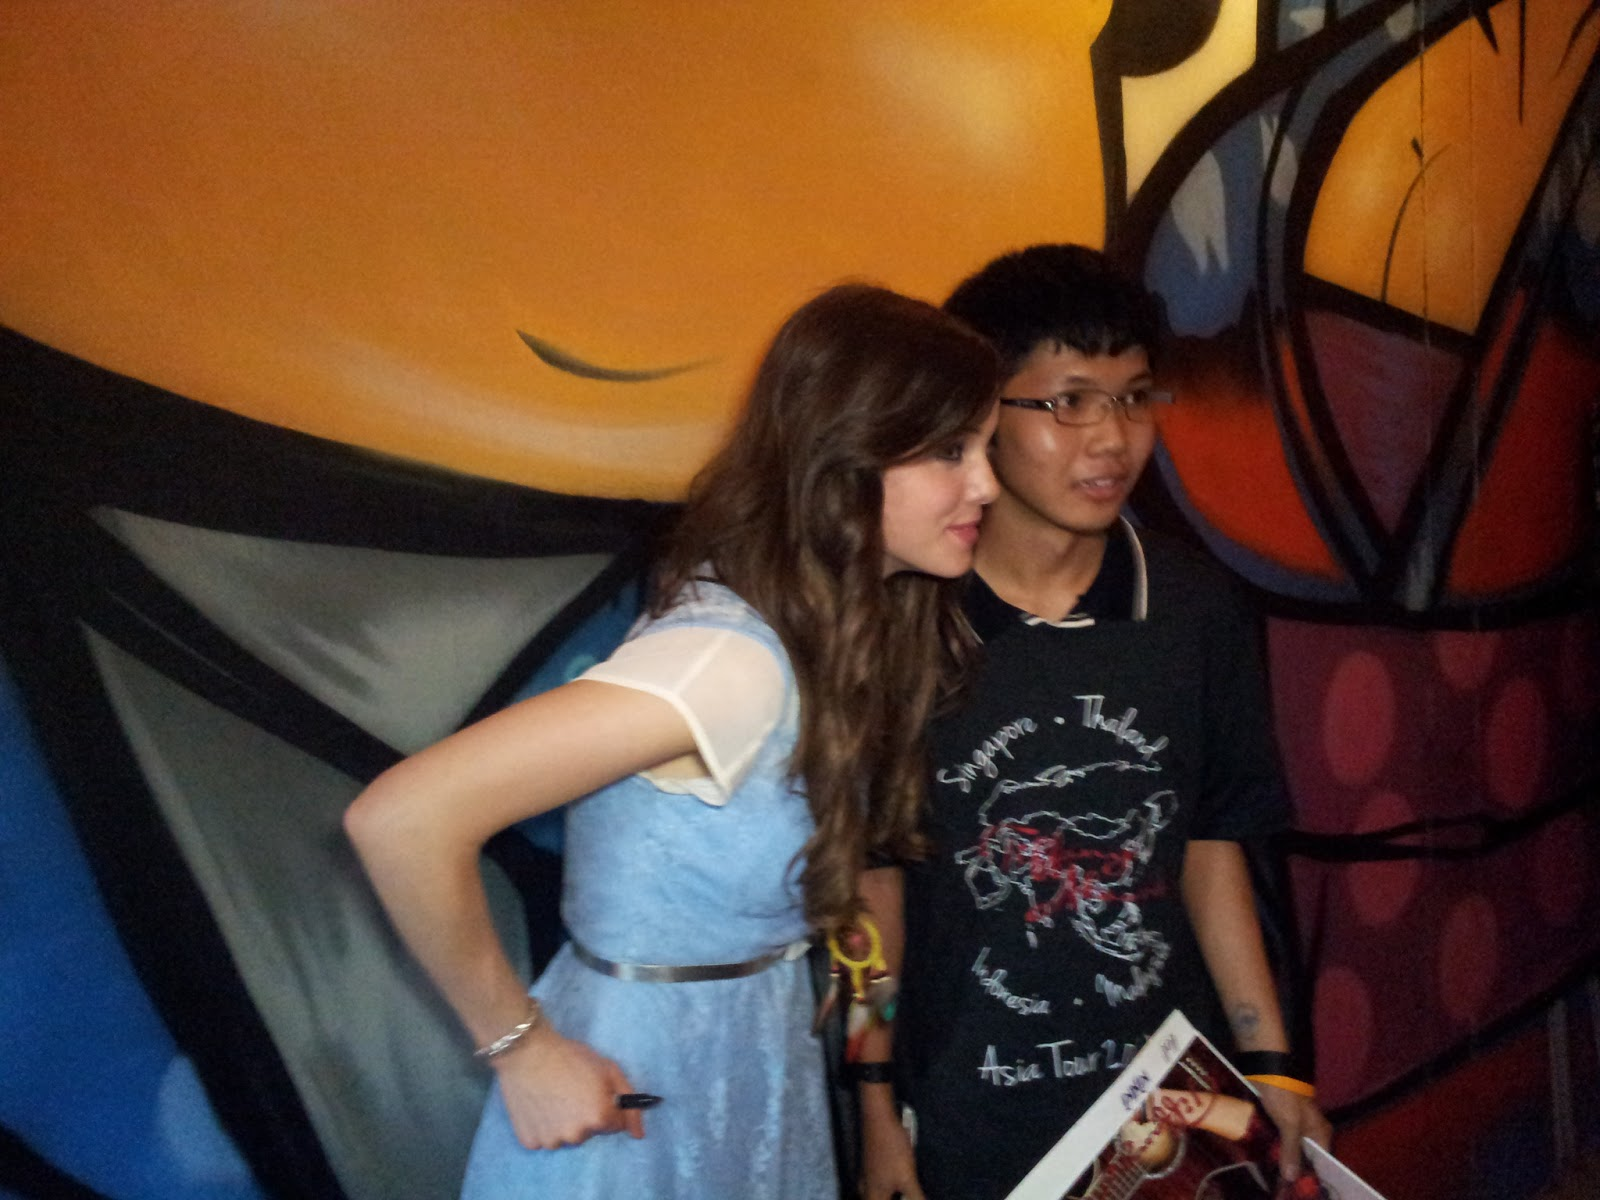 alvord personals The biography of tiffany alvord with personal life, affair, boyfriend, and married info a collection of facts with age, height.